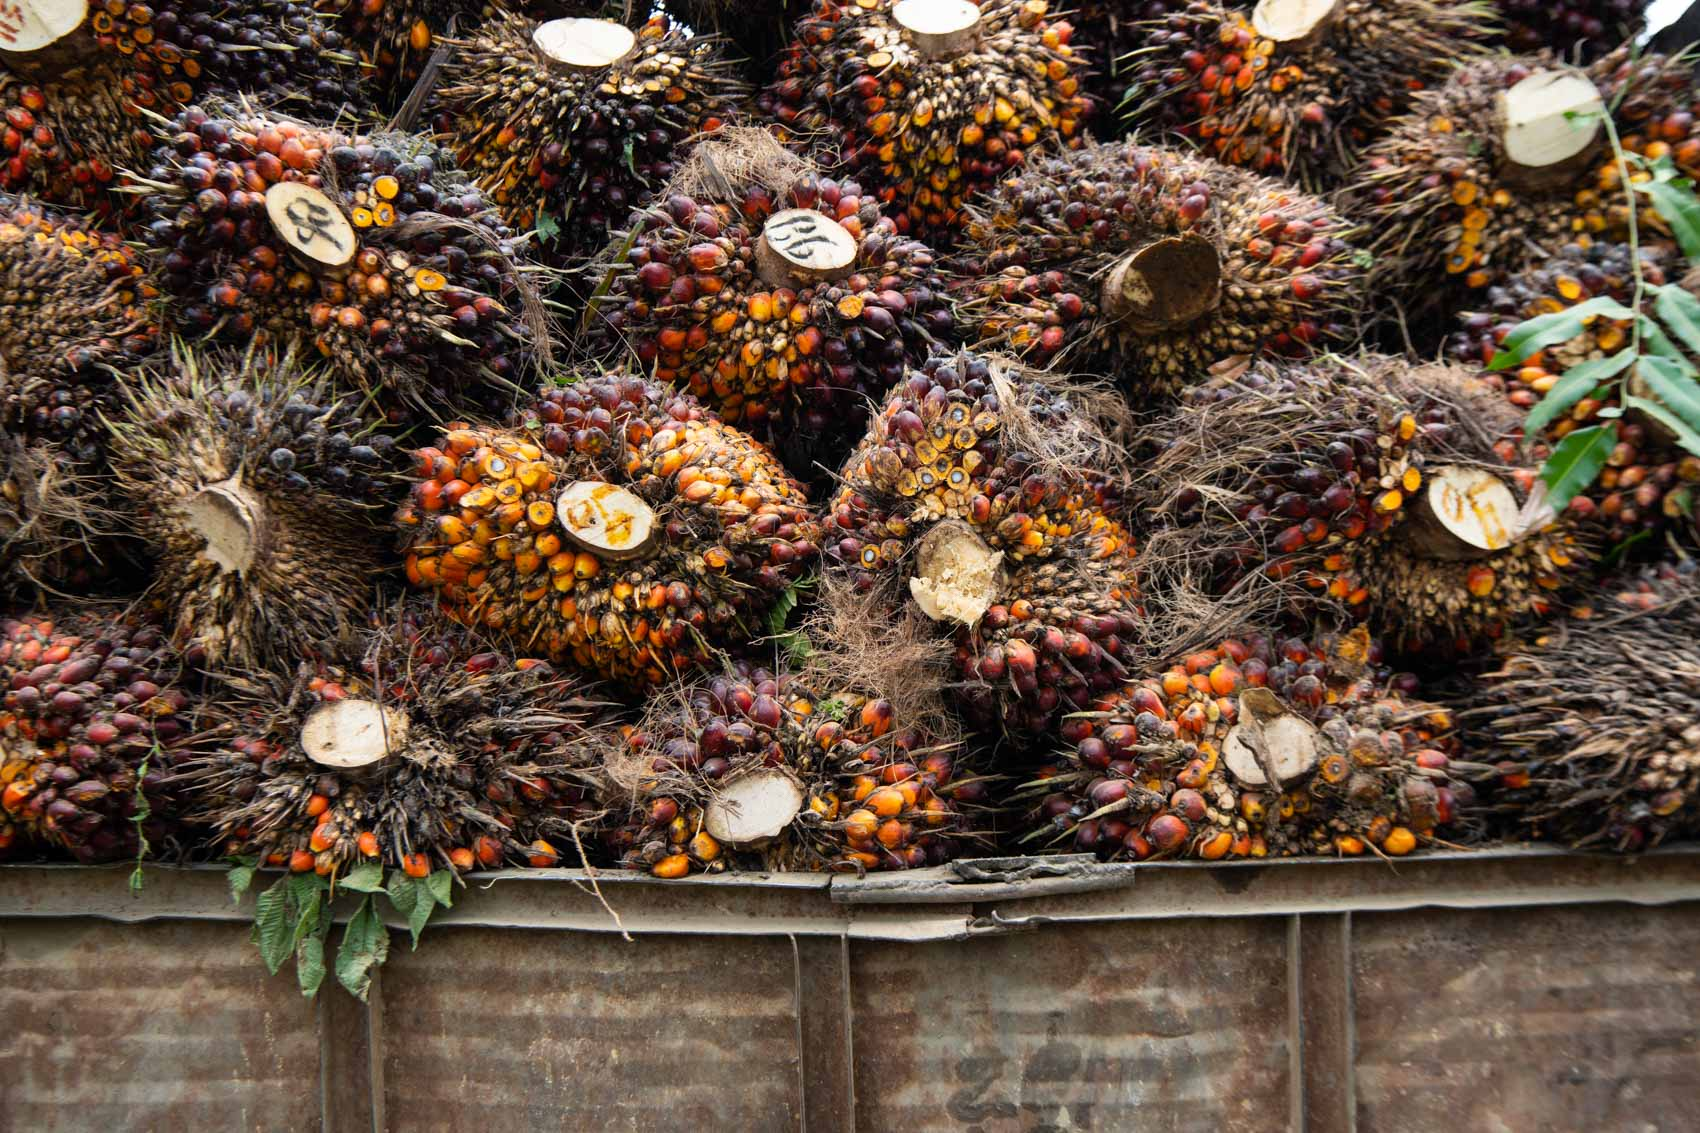 Bunches of palm oil fruit on the back of a truck © David Coulson conservation photographer